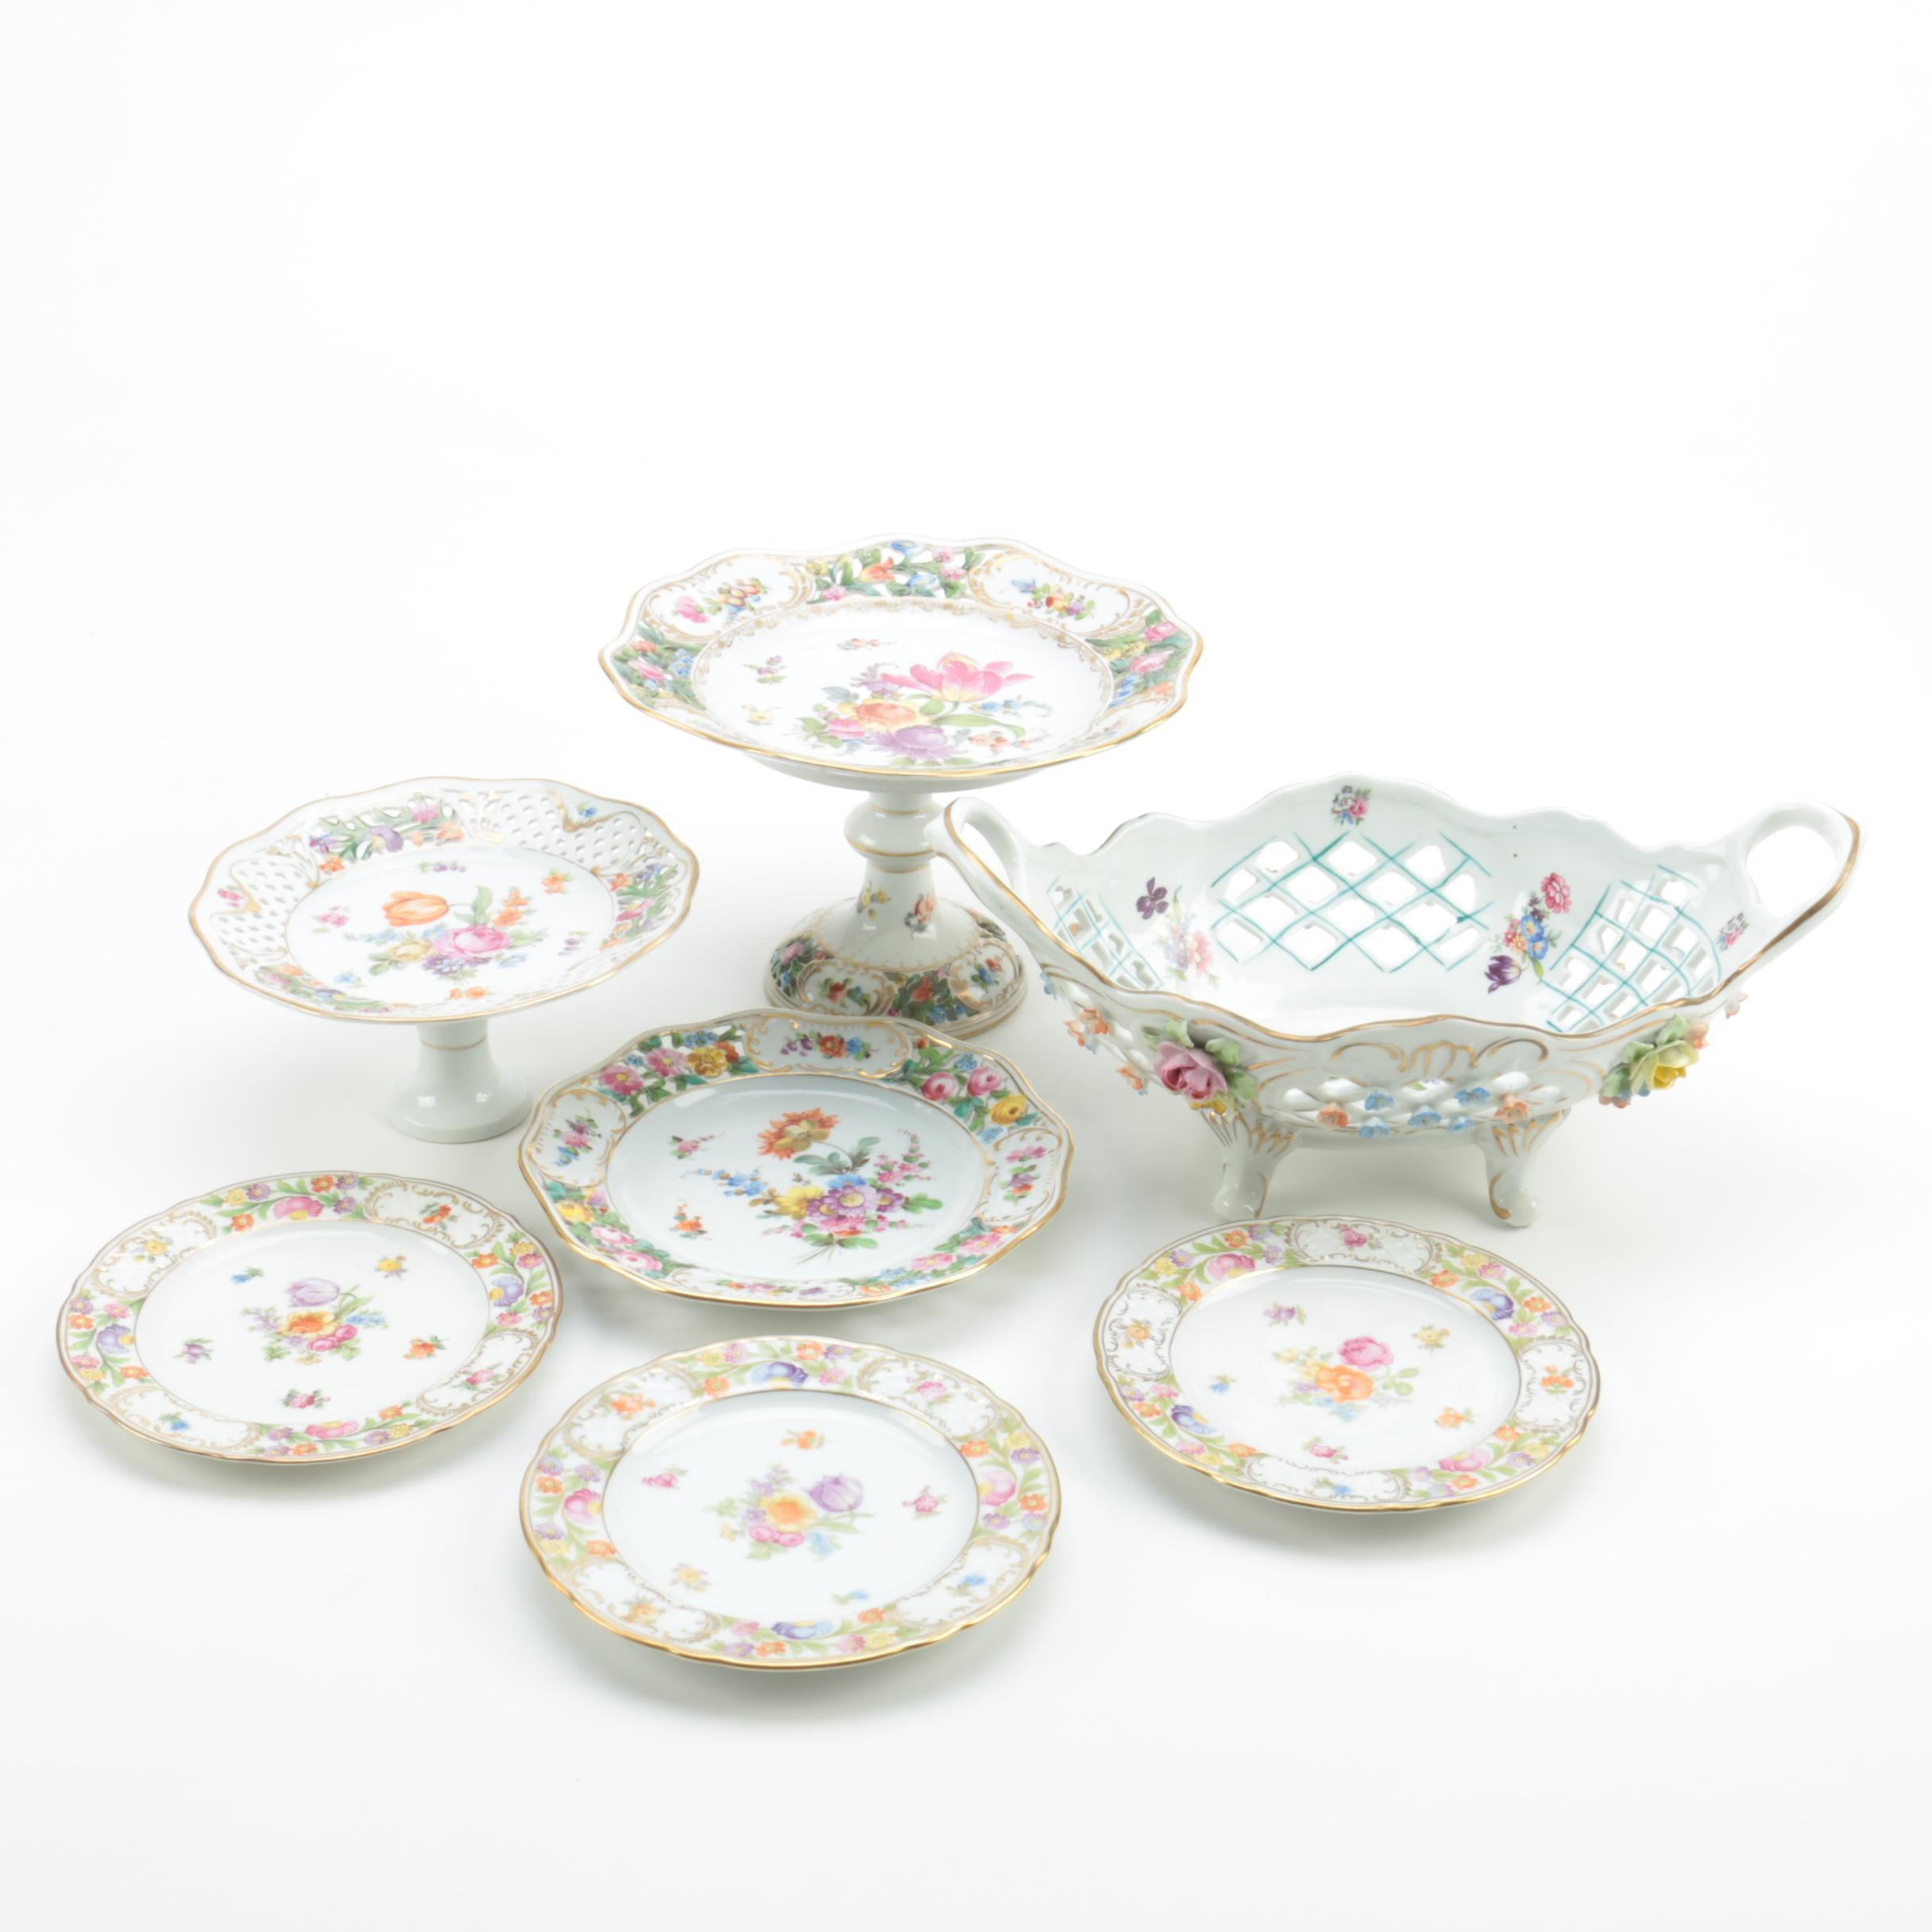 Dresden and Schumann Porcelain Tableware